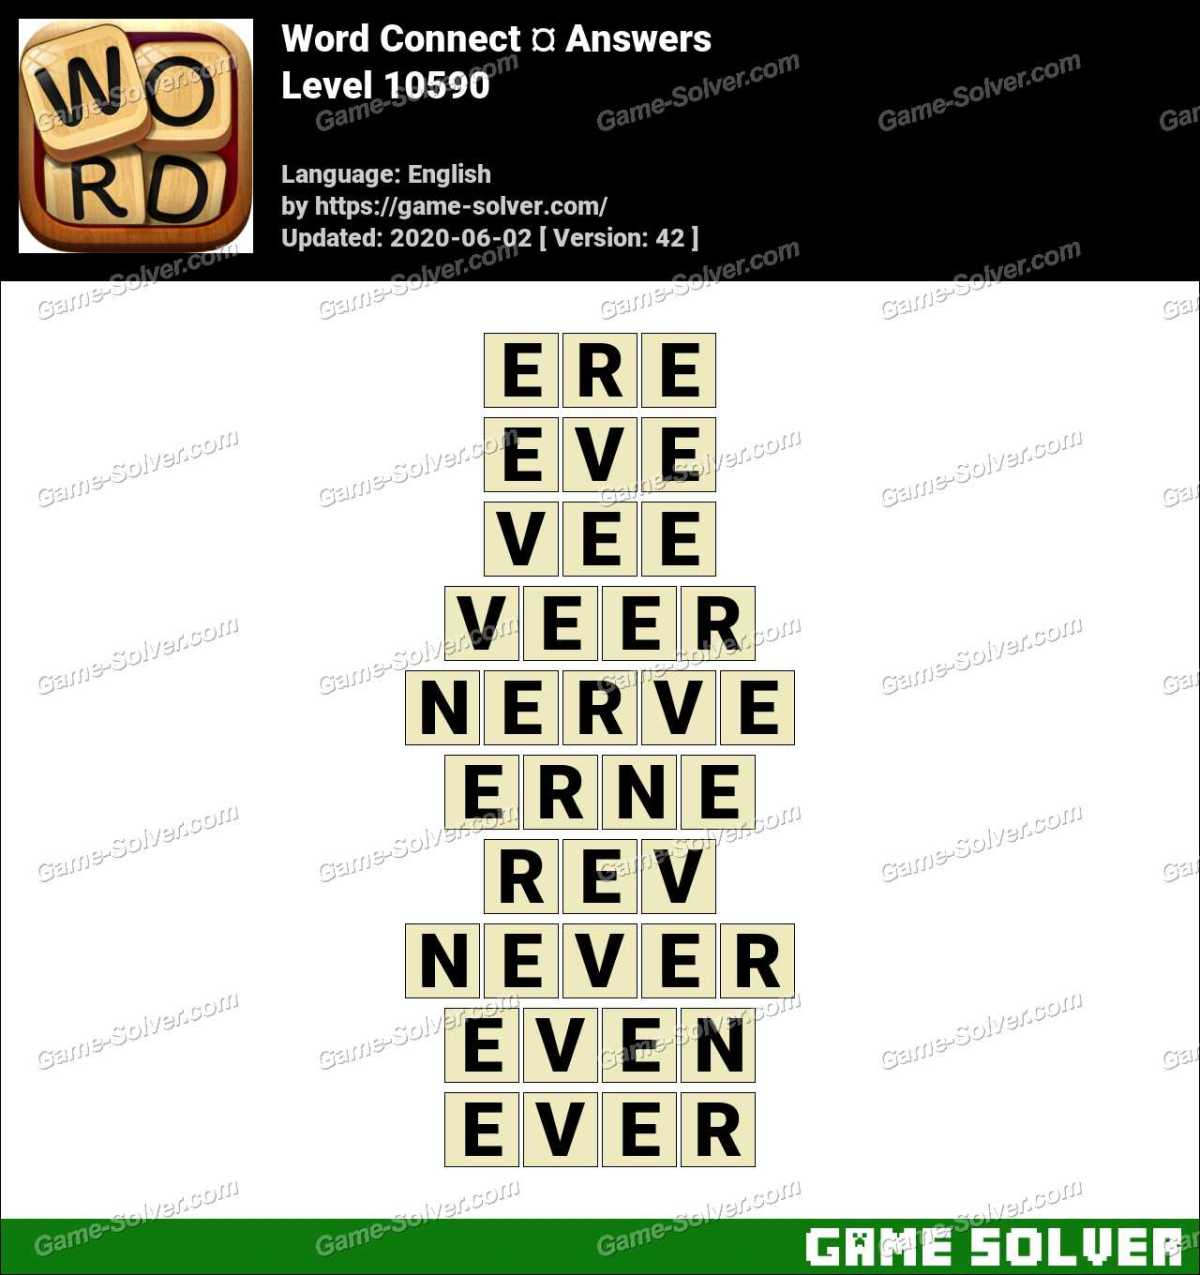 Word Connect Level 10590 Answers